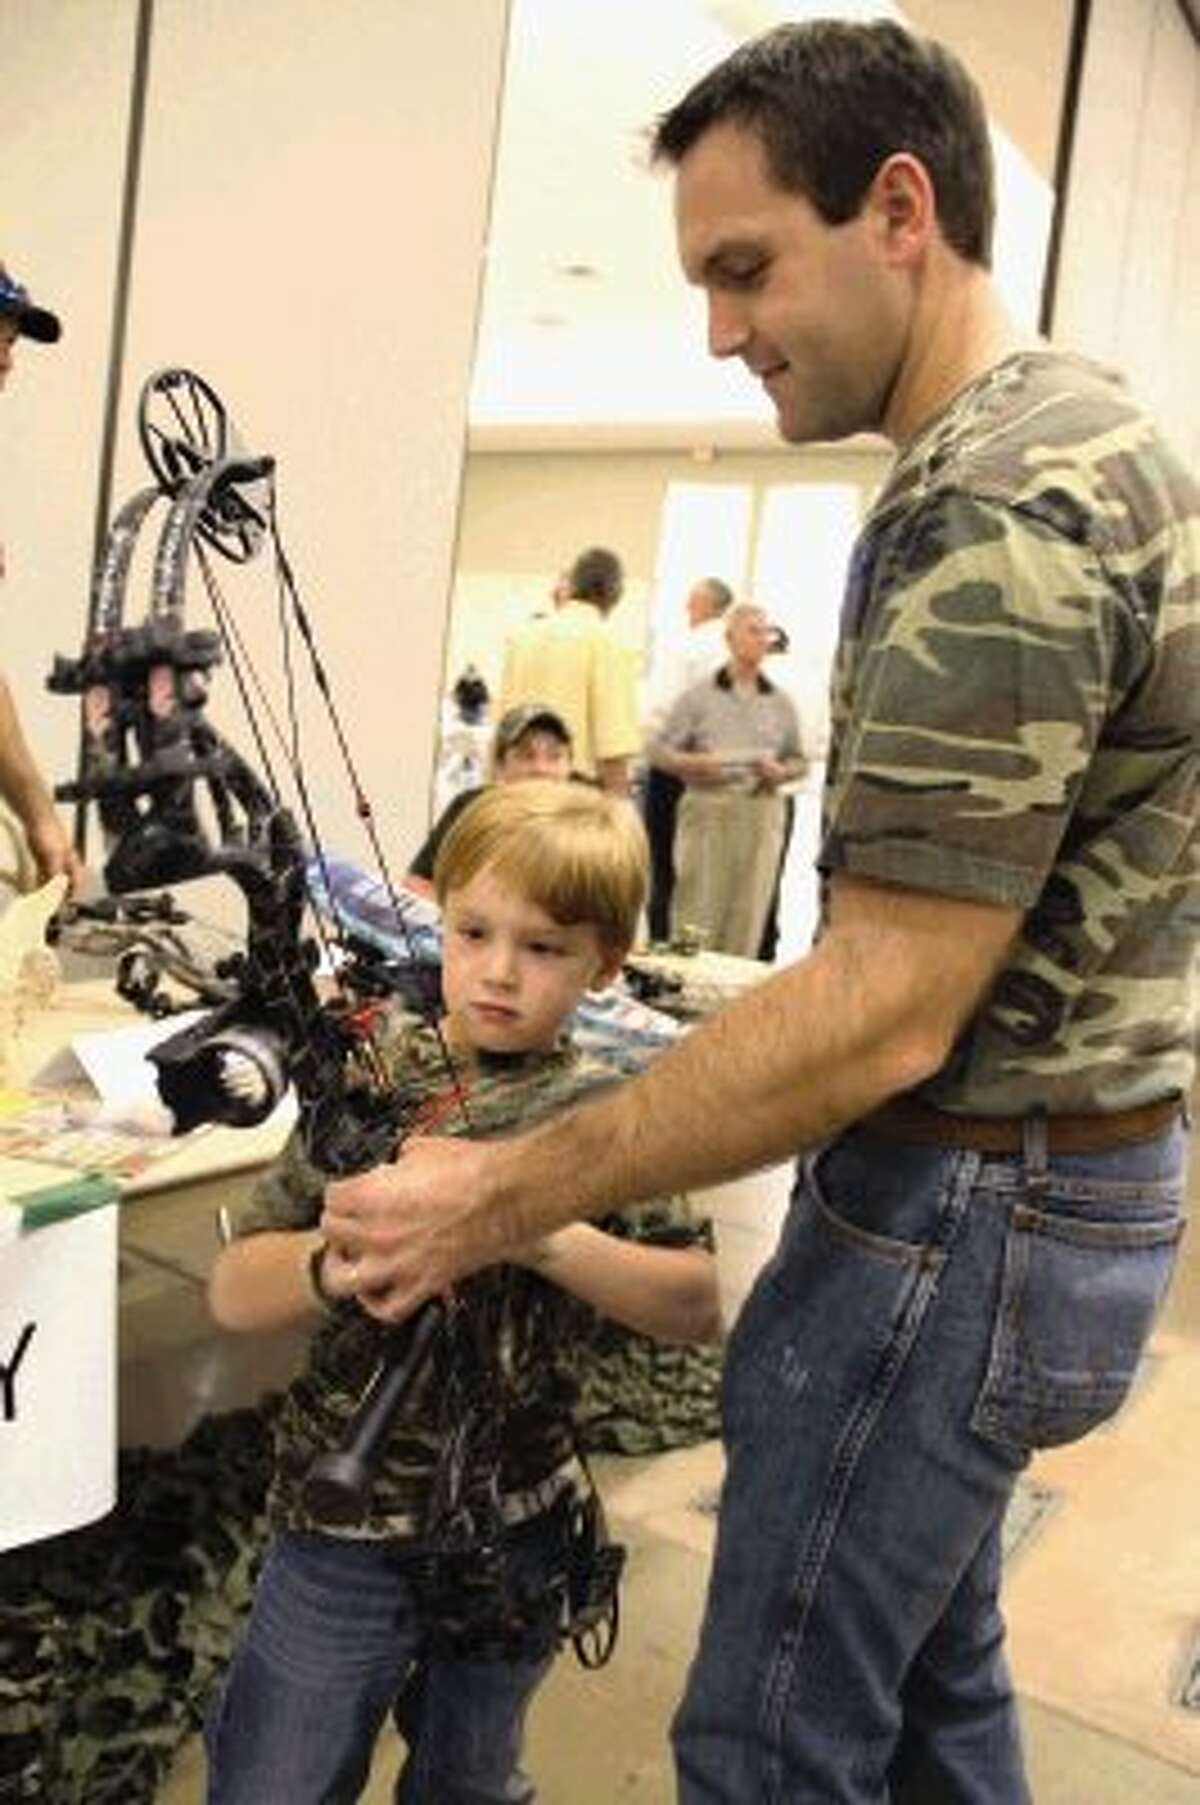 Conroe resident Cam Heathcott shows his son, Harper, a C&S Archery bow at the Outdoor and Sports Banquet on Thursday at the Lone Star Convention and Expo Center.